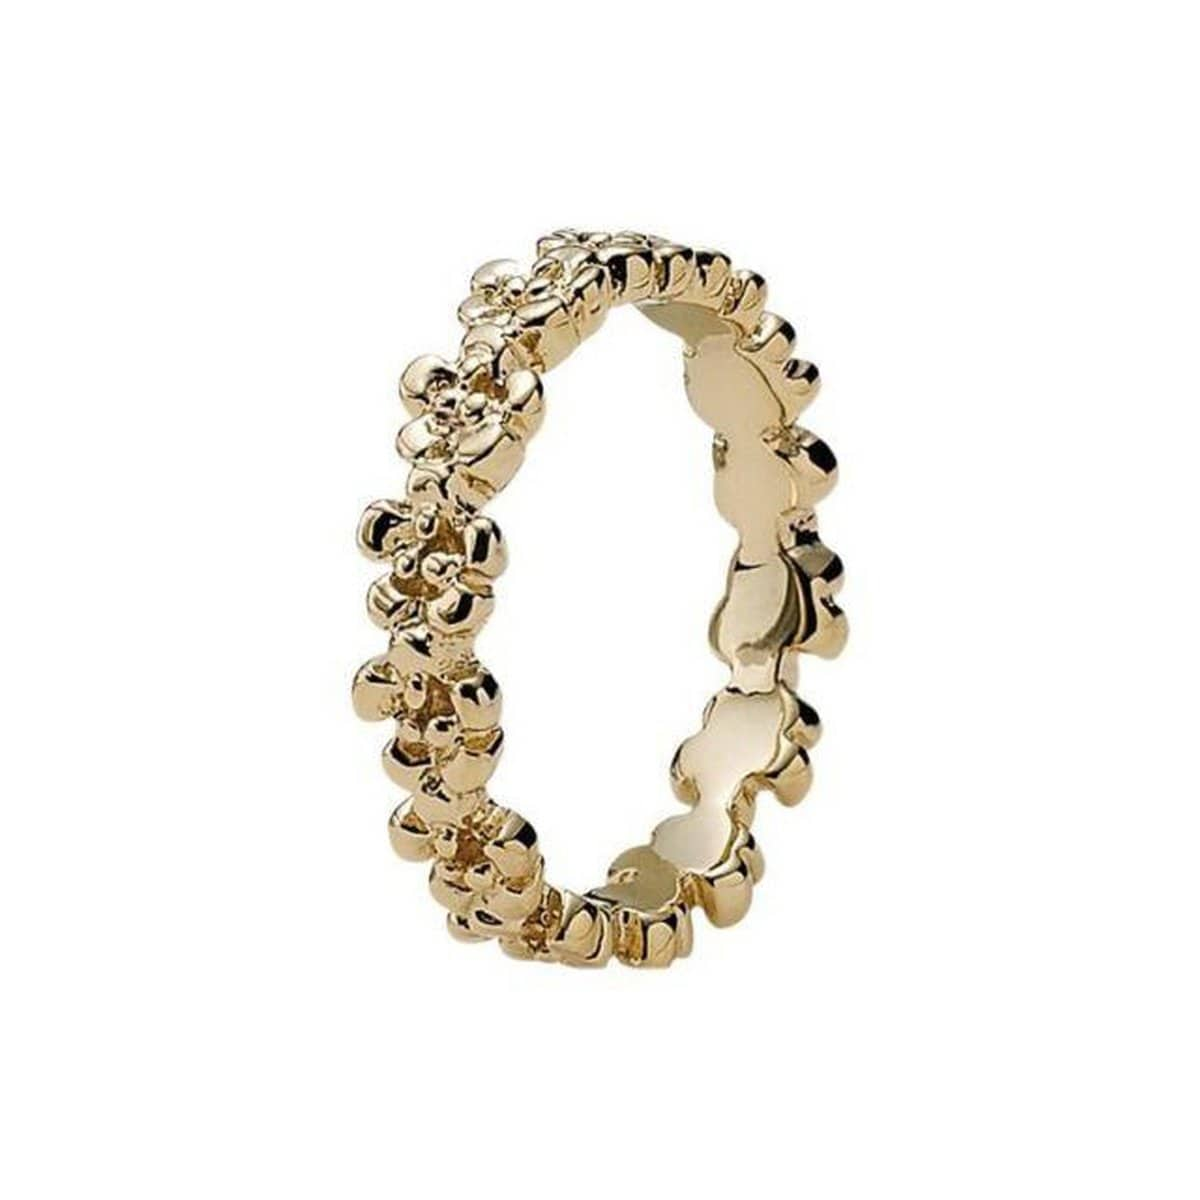 Darling Daisies 14K Gold Ring - 150104-Pandora-Renee Taylor Gallery